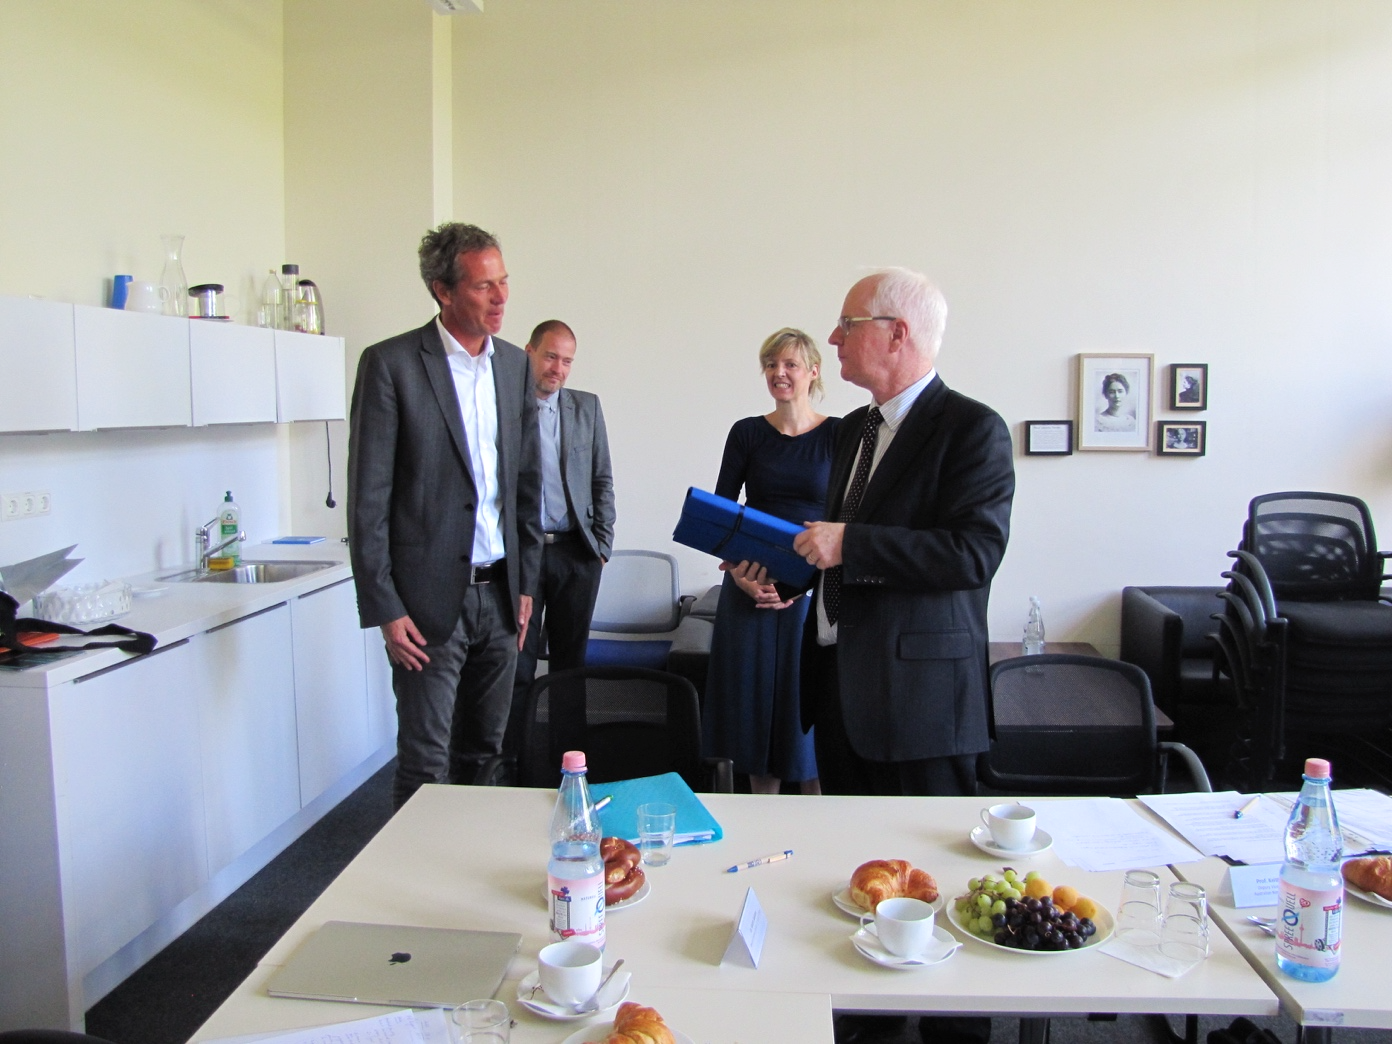 Prof. Dr. Kai Matuschewski presents a gift to Prof. Dr. Nugent, a graphic novel about Alexander von Humboldt.